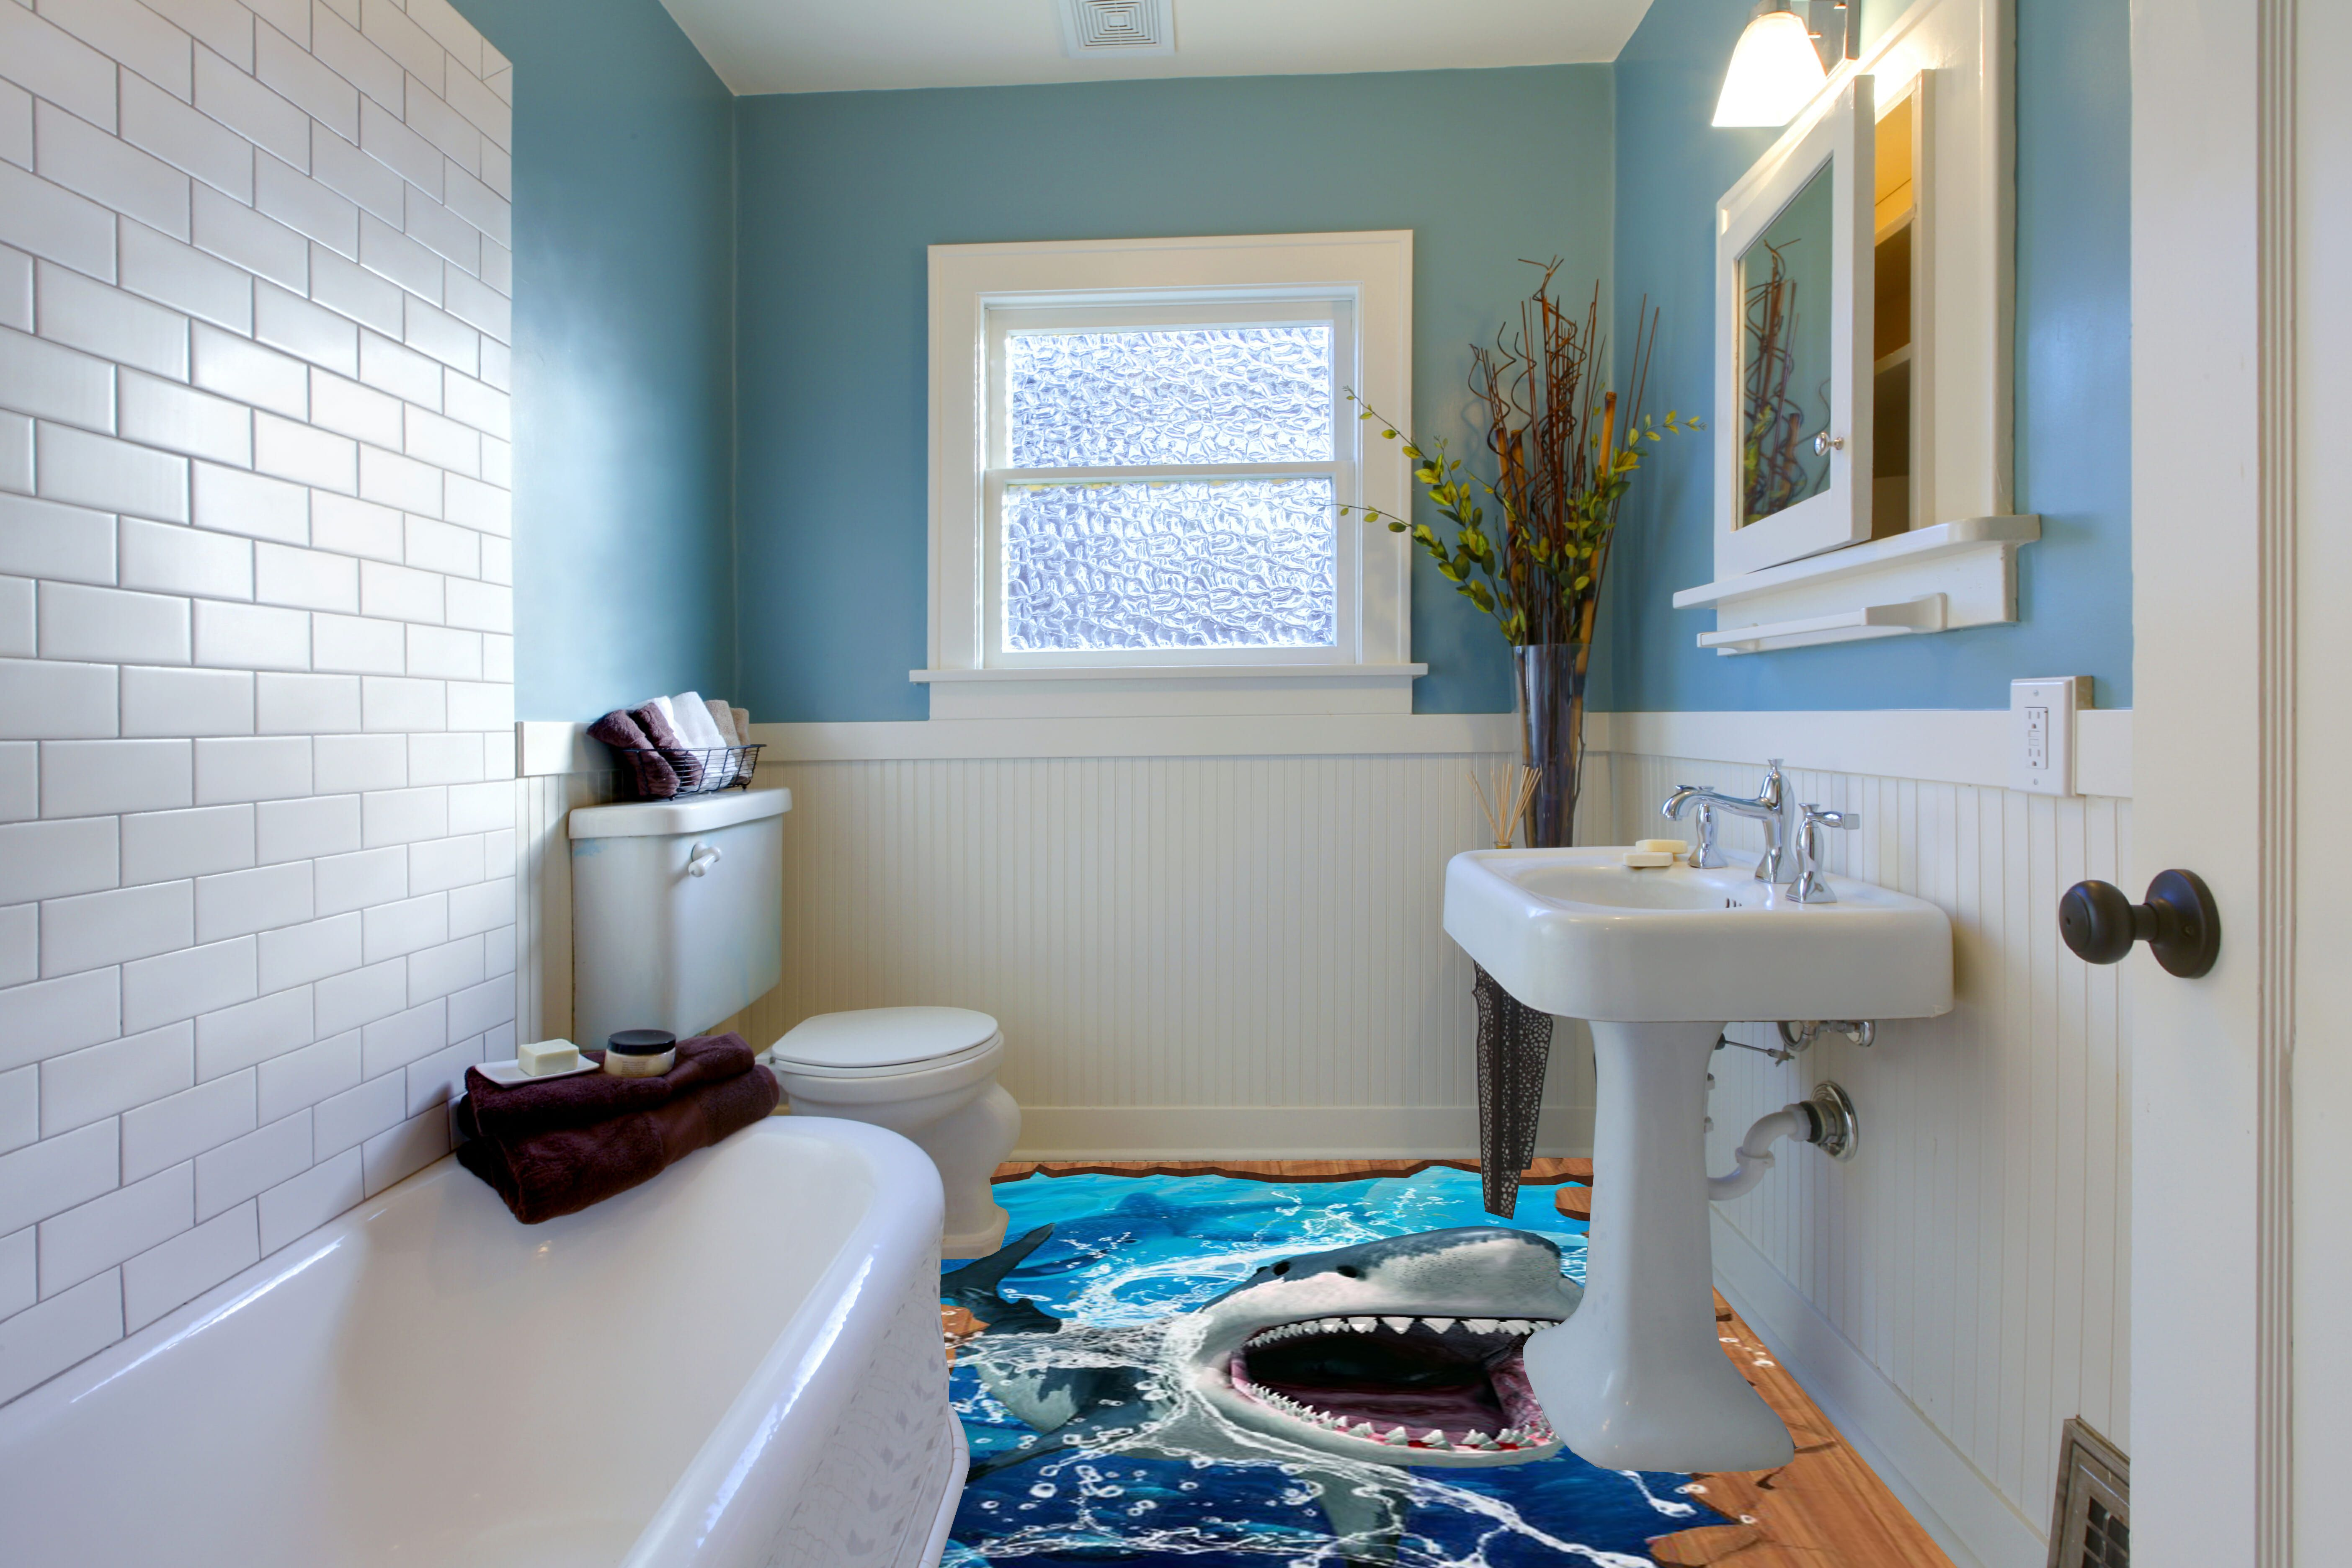 3d epoxy flooring for bathroom shark attack theme | flooring and ...